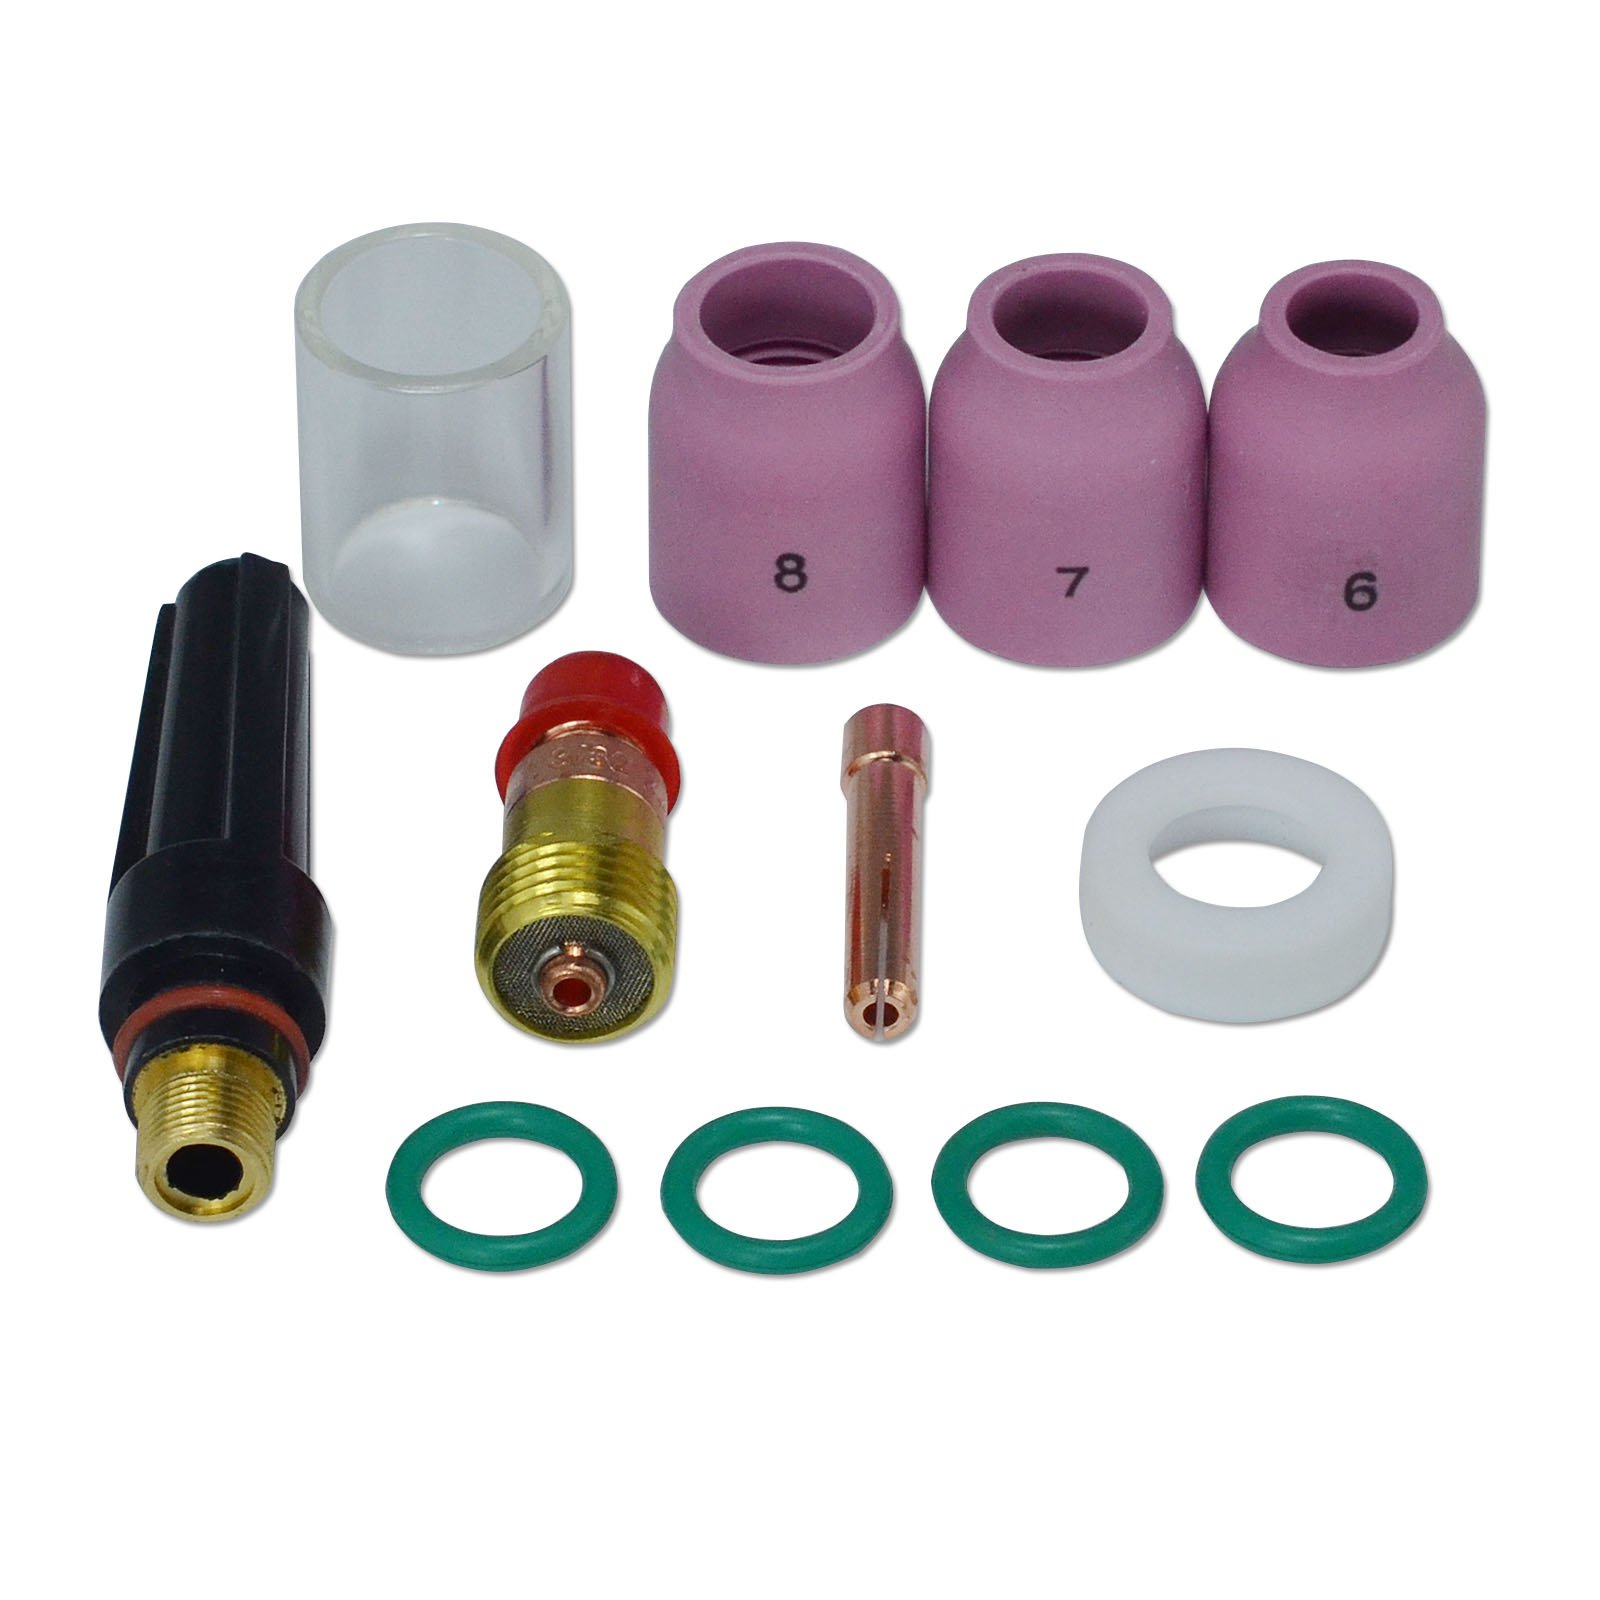 49PCS Scoolr TIG Welding Torch Supplies Welding Collet Gasket Back Cap Stubby Gas Lens Pyrex Glass Cup Alumina Nozzle Accessoory Kit for WP-17//18//26 TIG Welding Torch Accessories Kit